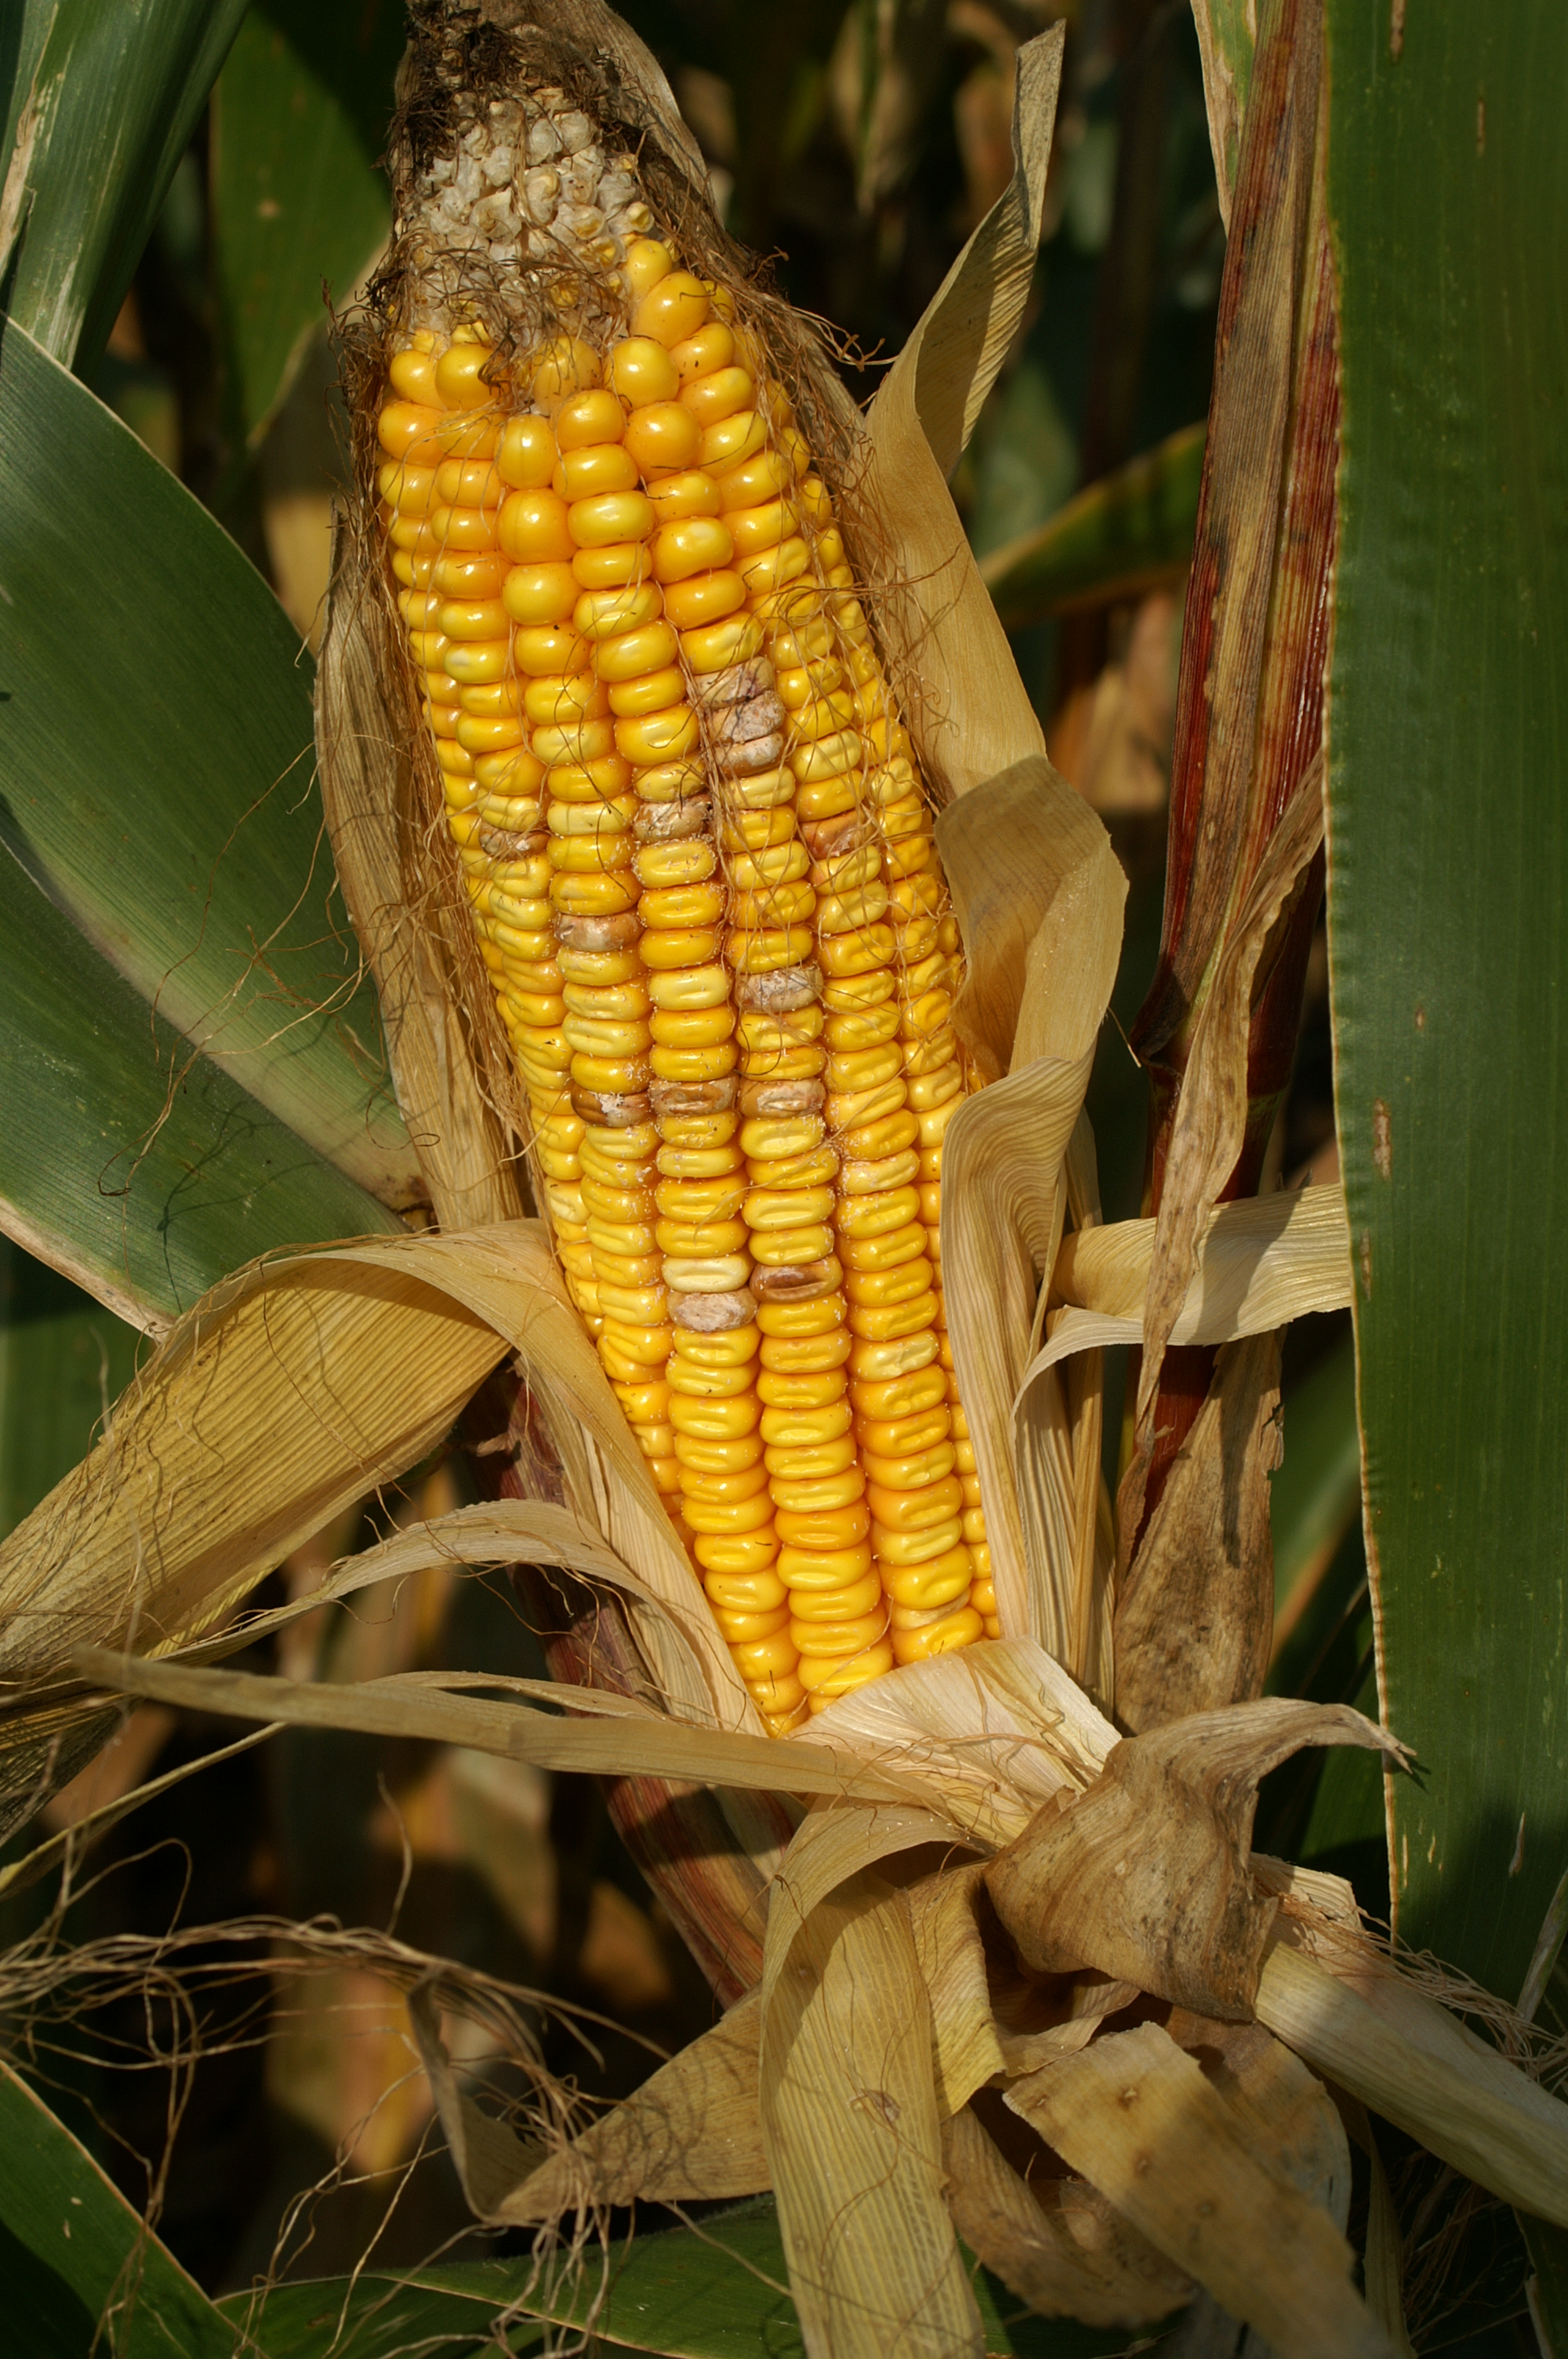 Scattered kernels with symptoms and signs of Fusarium ear rot.